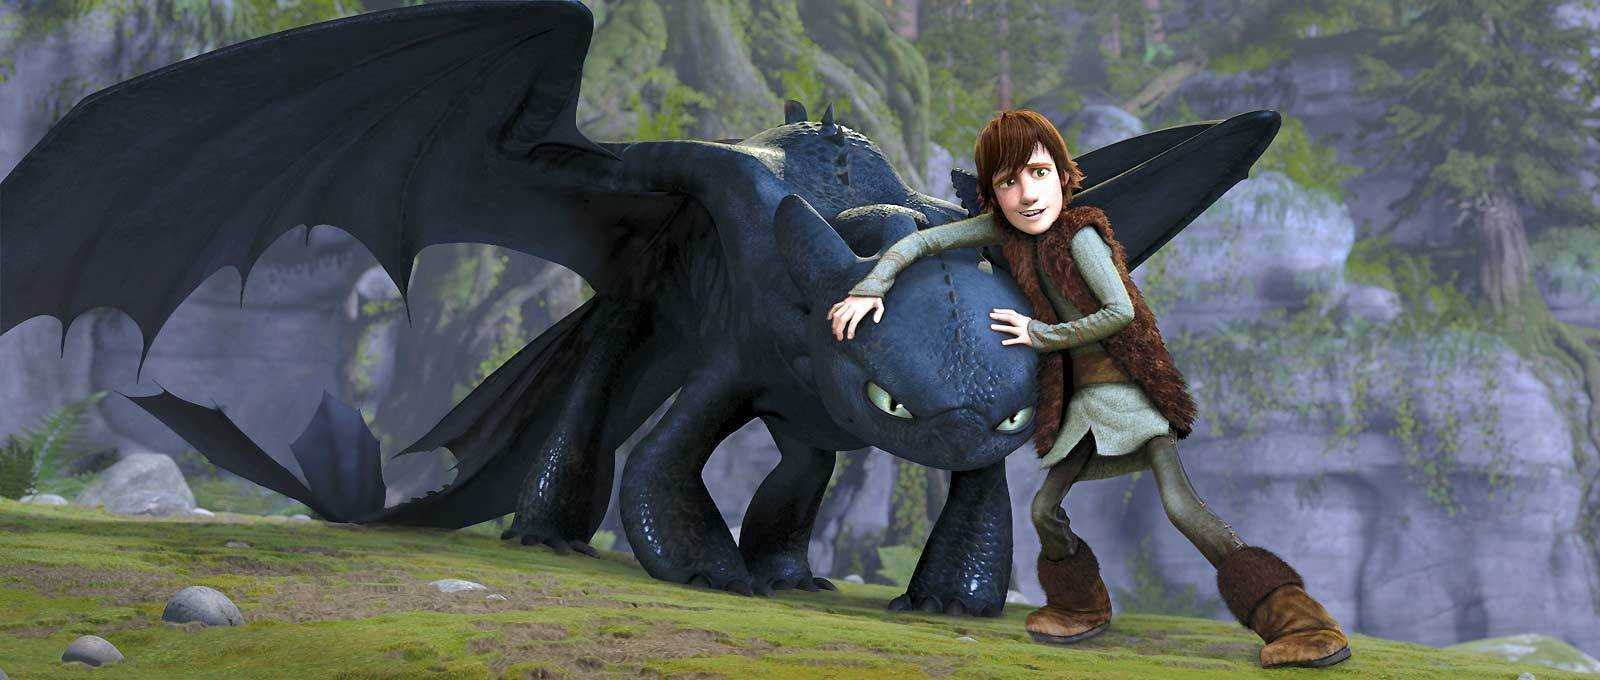 DreamWorks Animation Is Considering A Fourth 'How To Train Your Dragon' Film